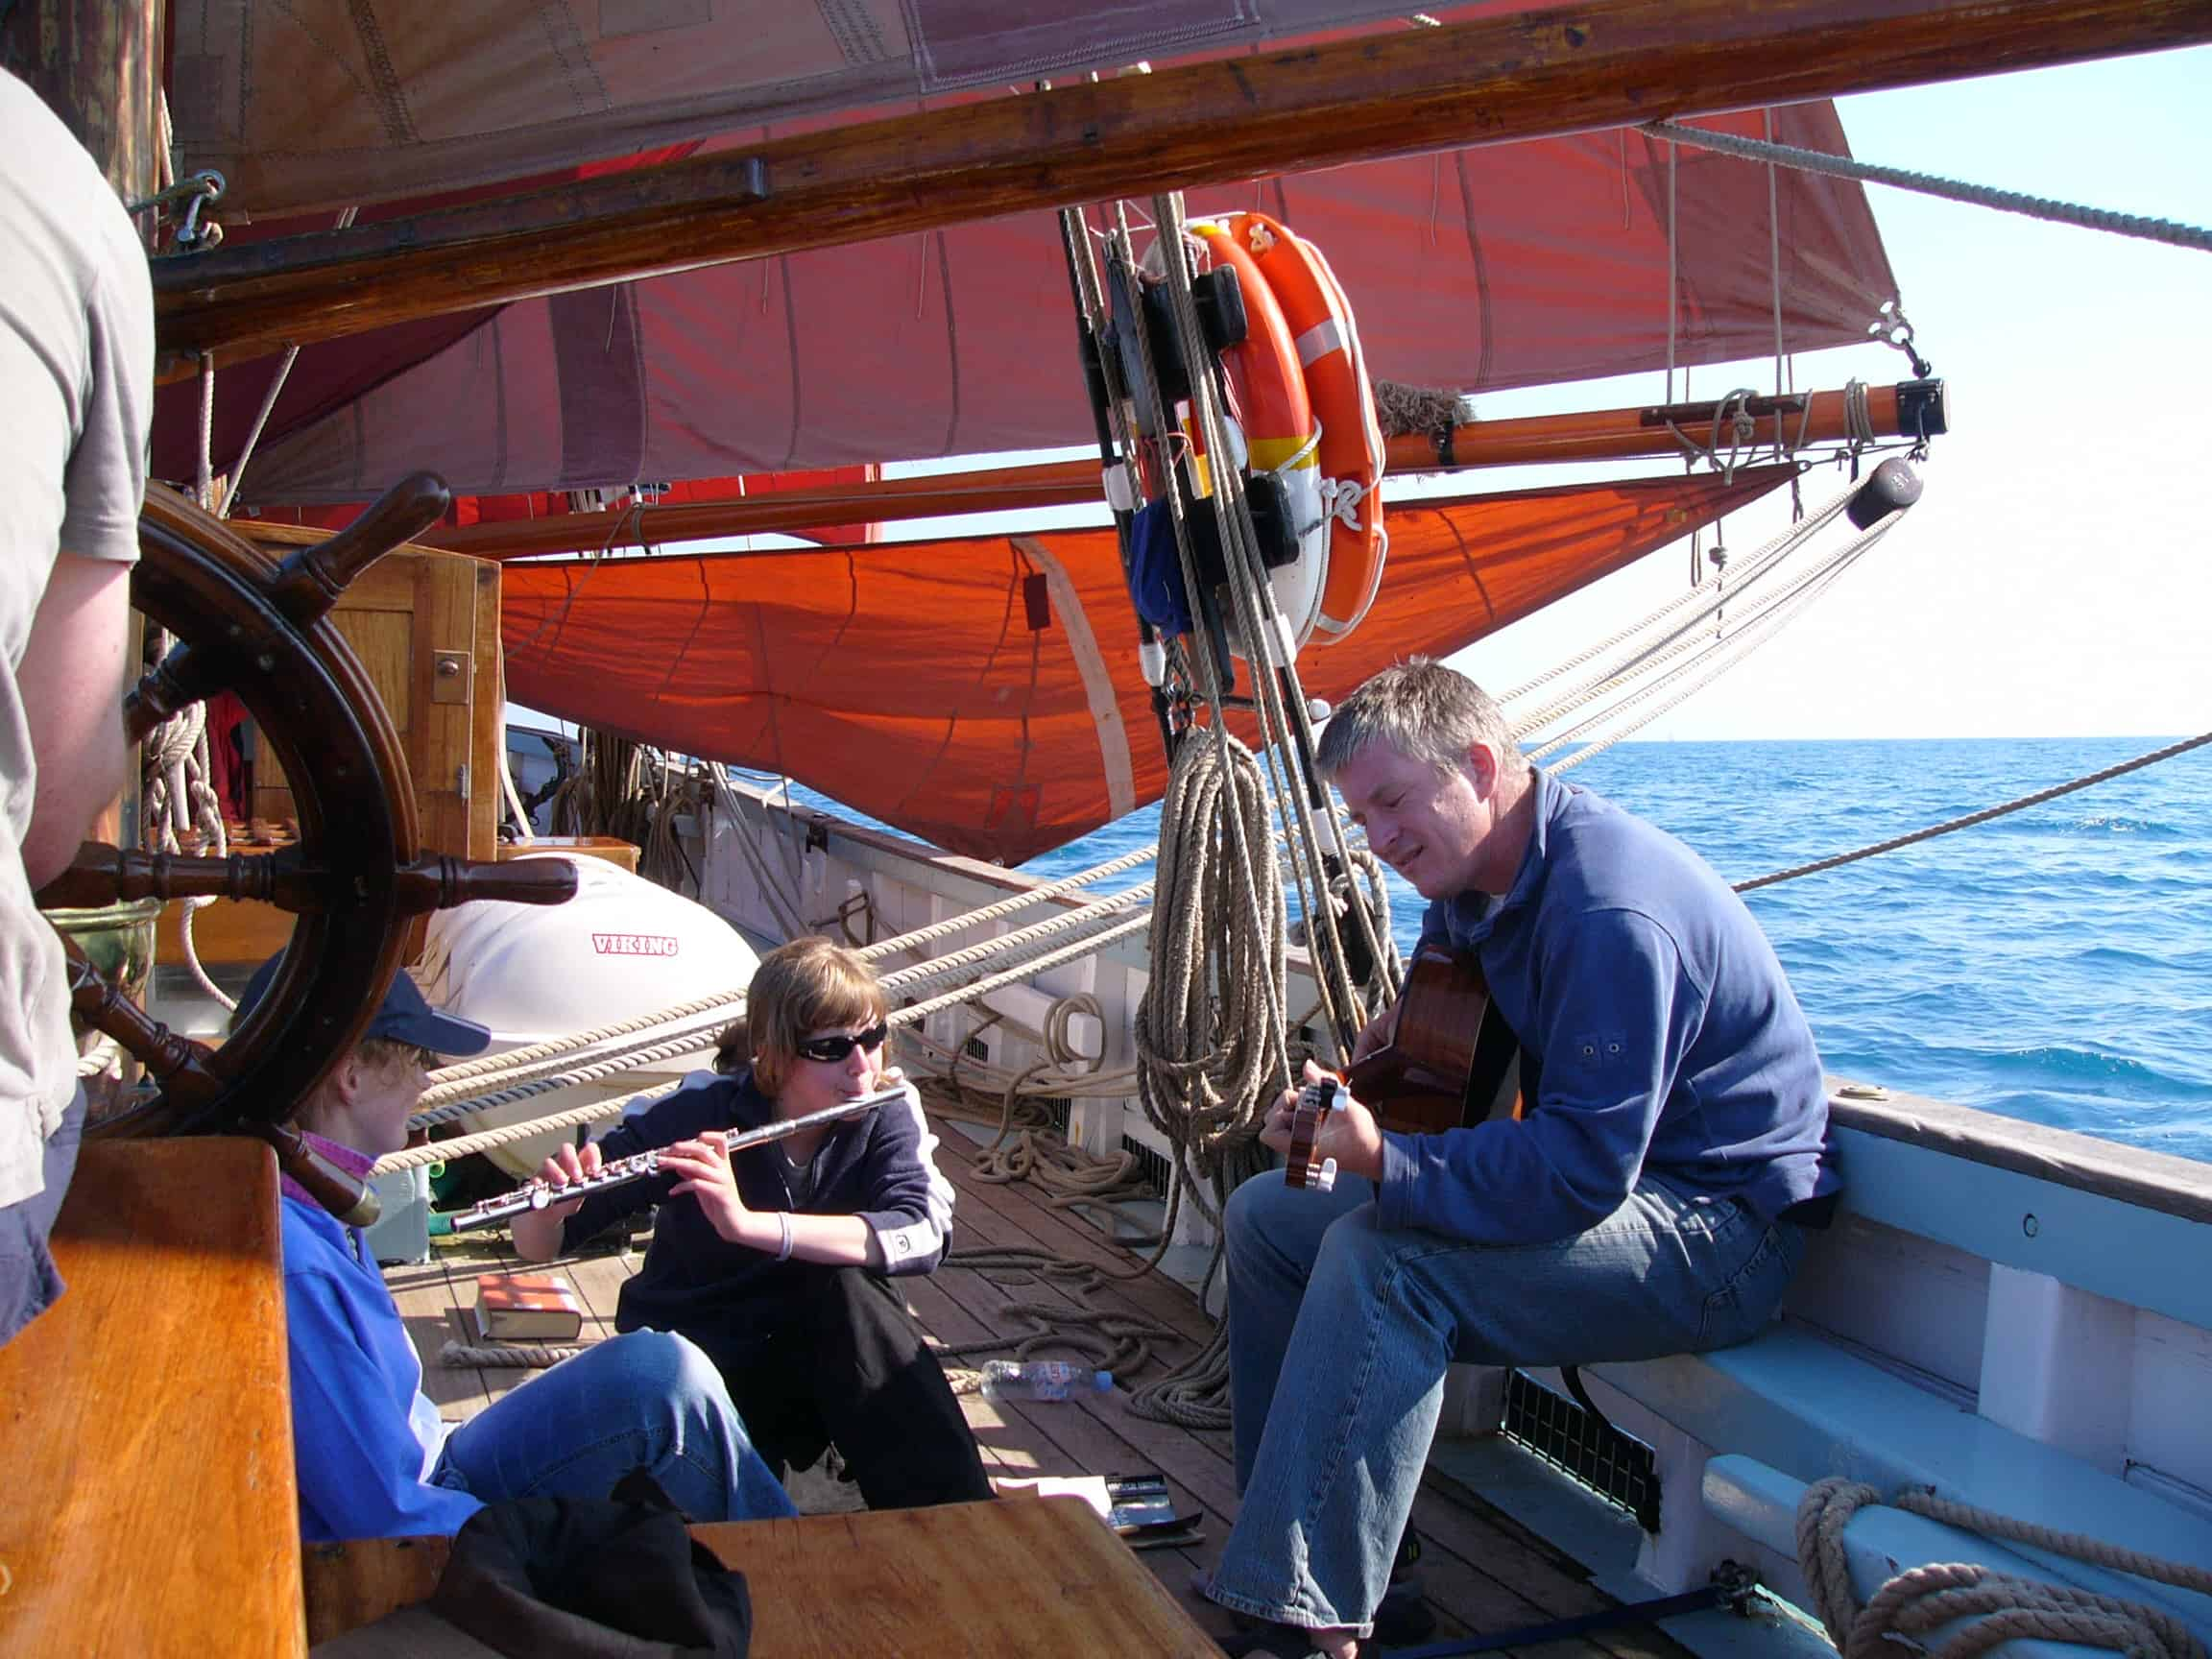 Musicians and a water sail on Provident